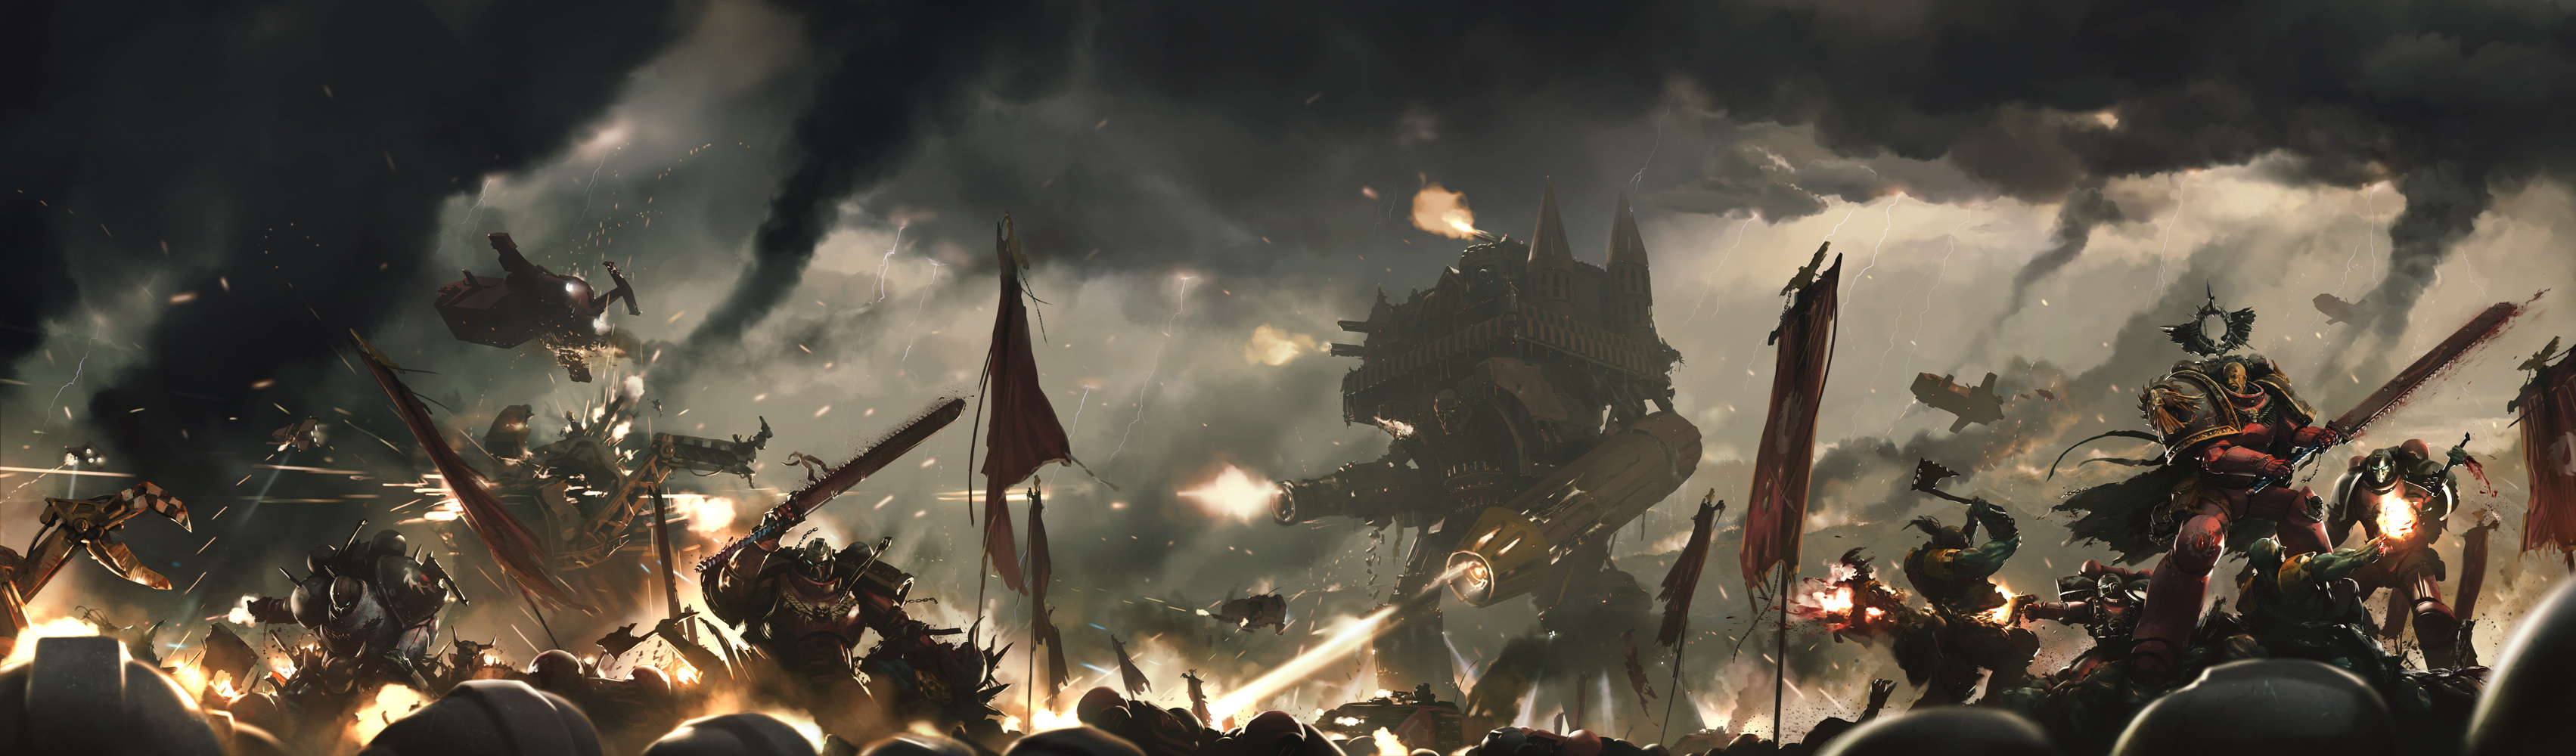 [W40K] Collection d'images : Space Marines - Page 2 9bf26ce0e324b70fc305ba1eca97ba45-d6b783a